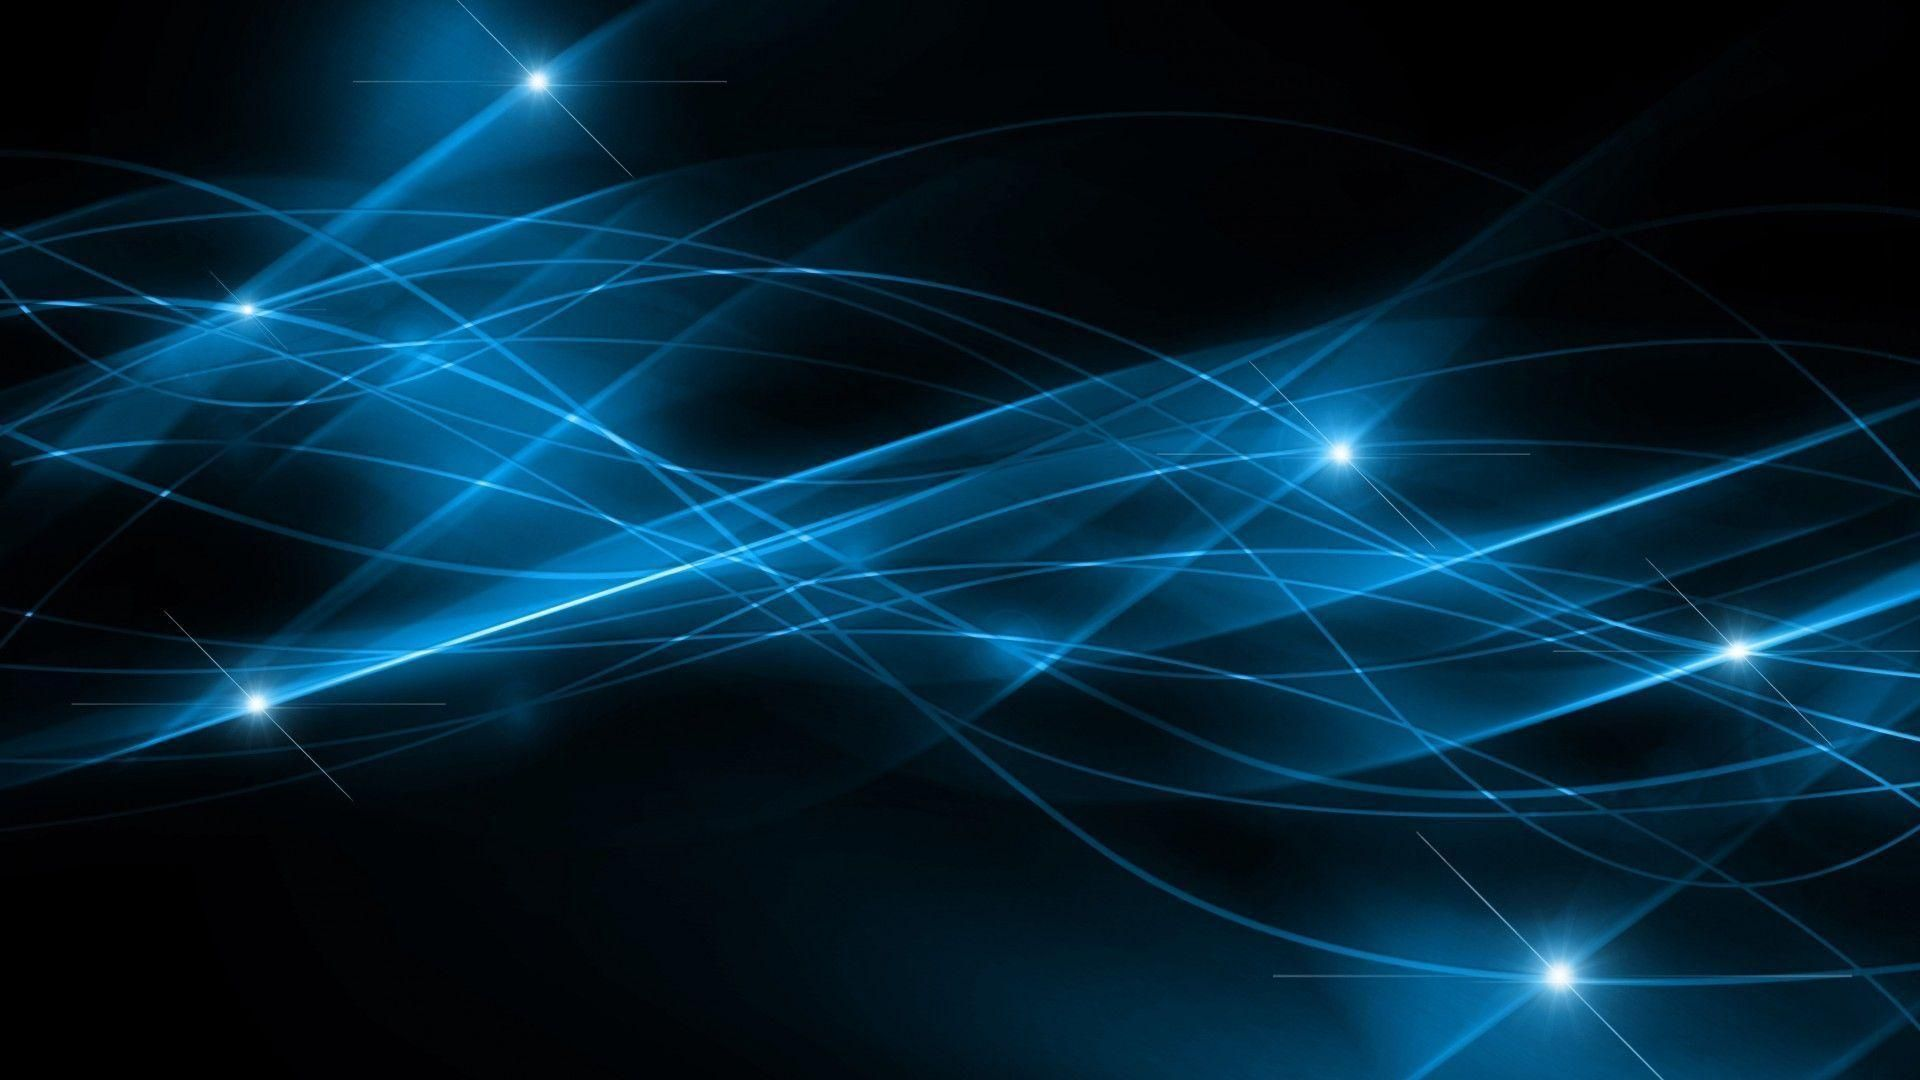 Abstract Blue Wallpaper Desktop Abstract Blue Abstract